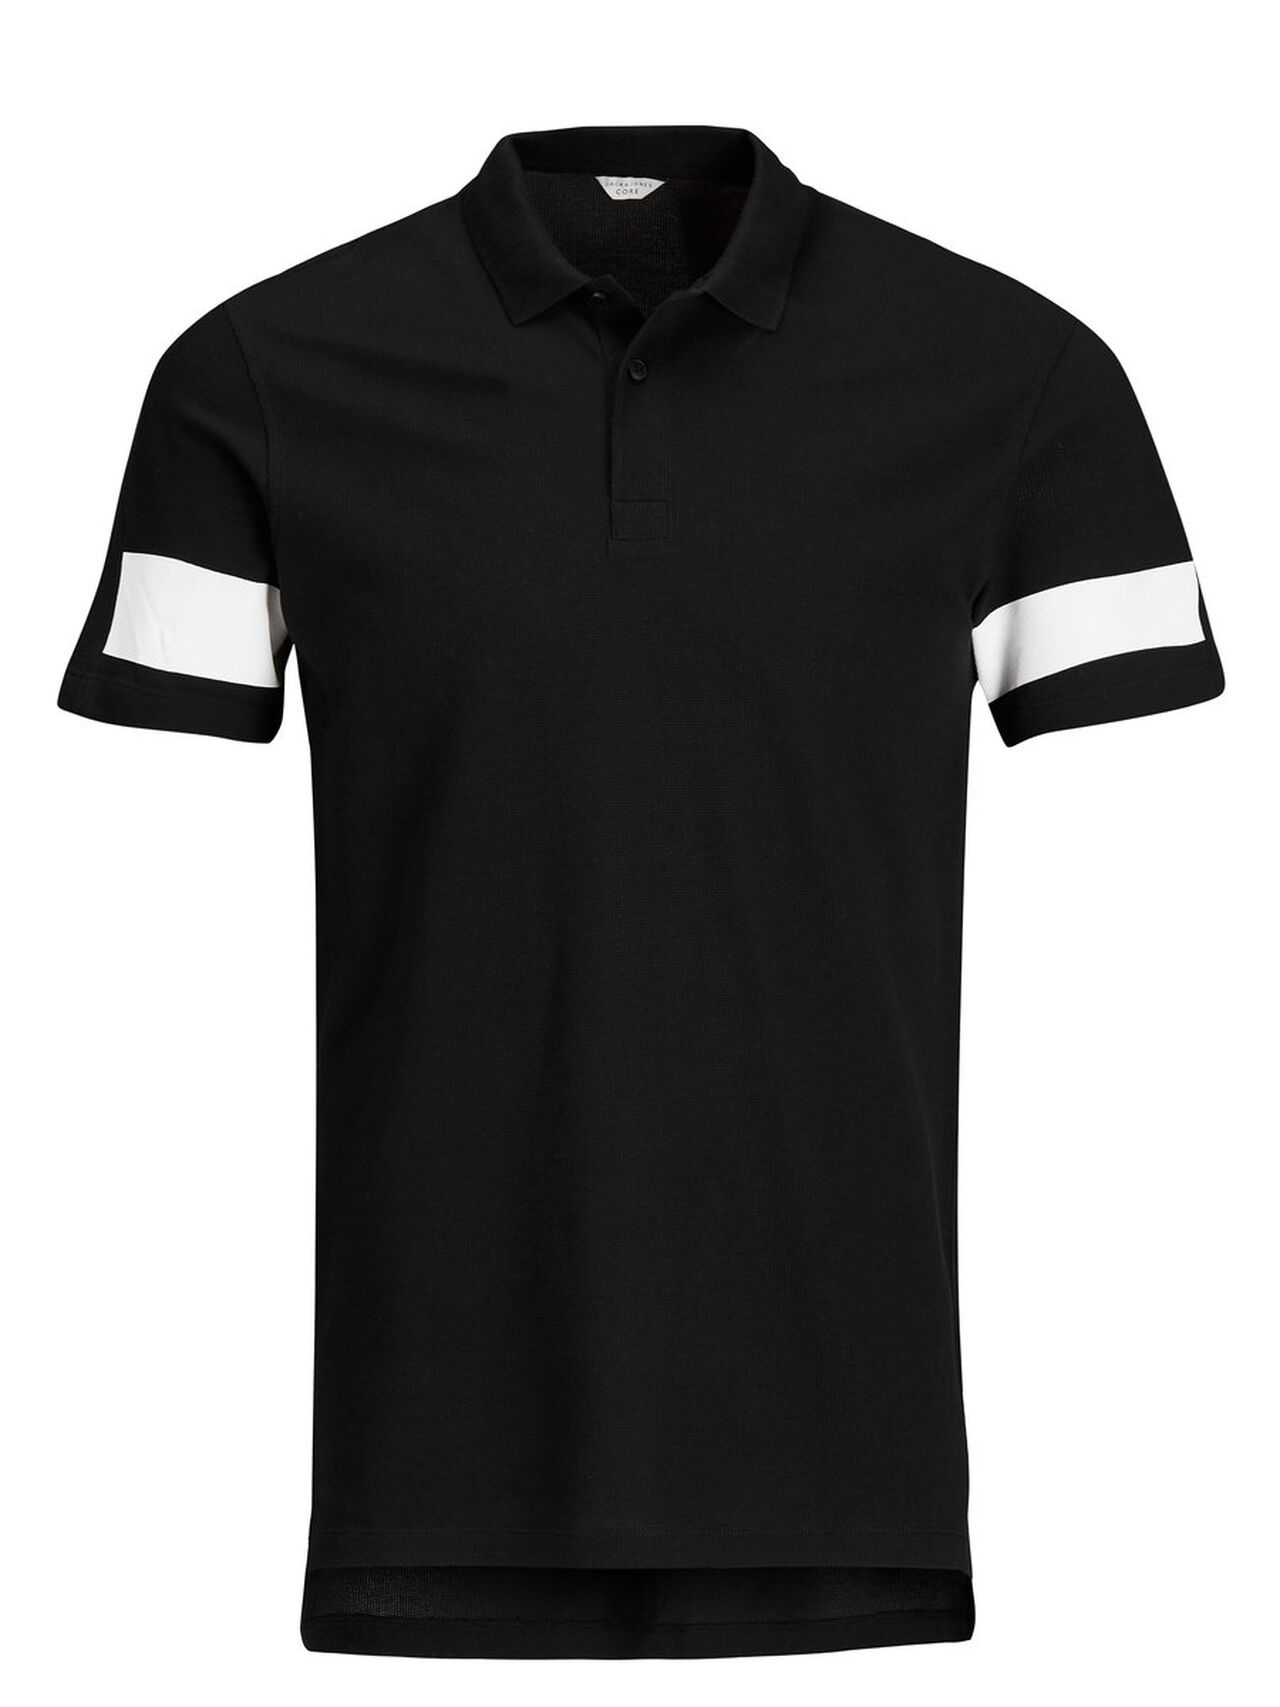 JACK & JONES Long Fit Poloshirt Heren Zwart thumbnail